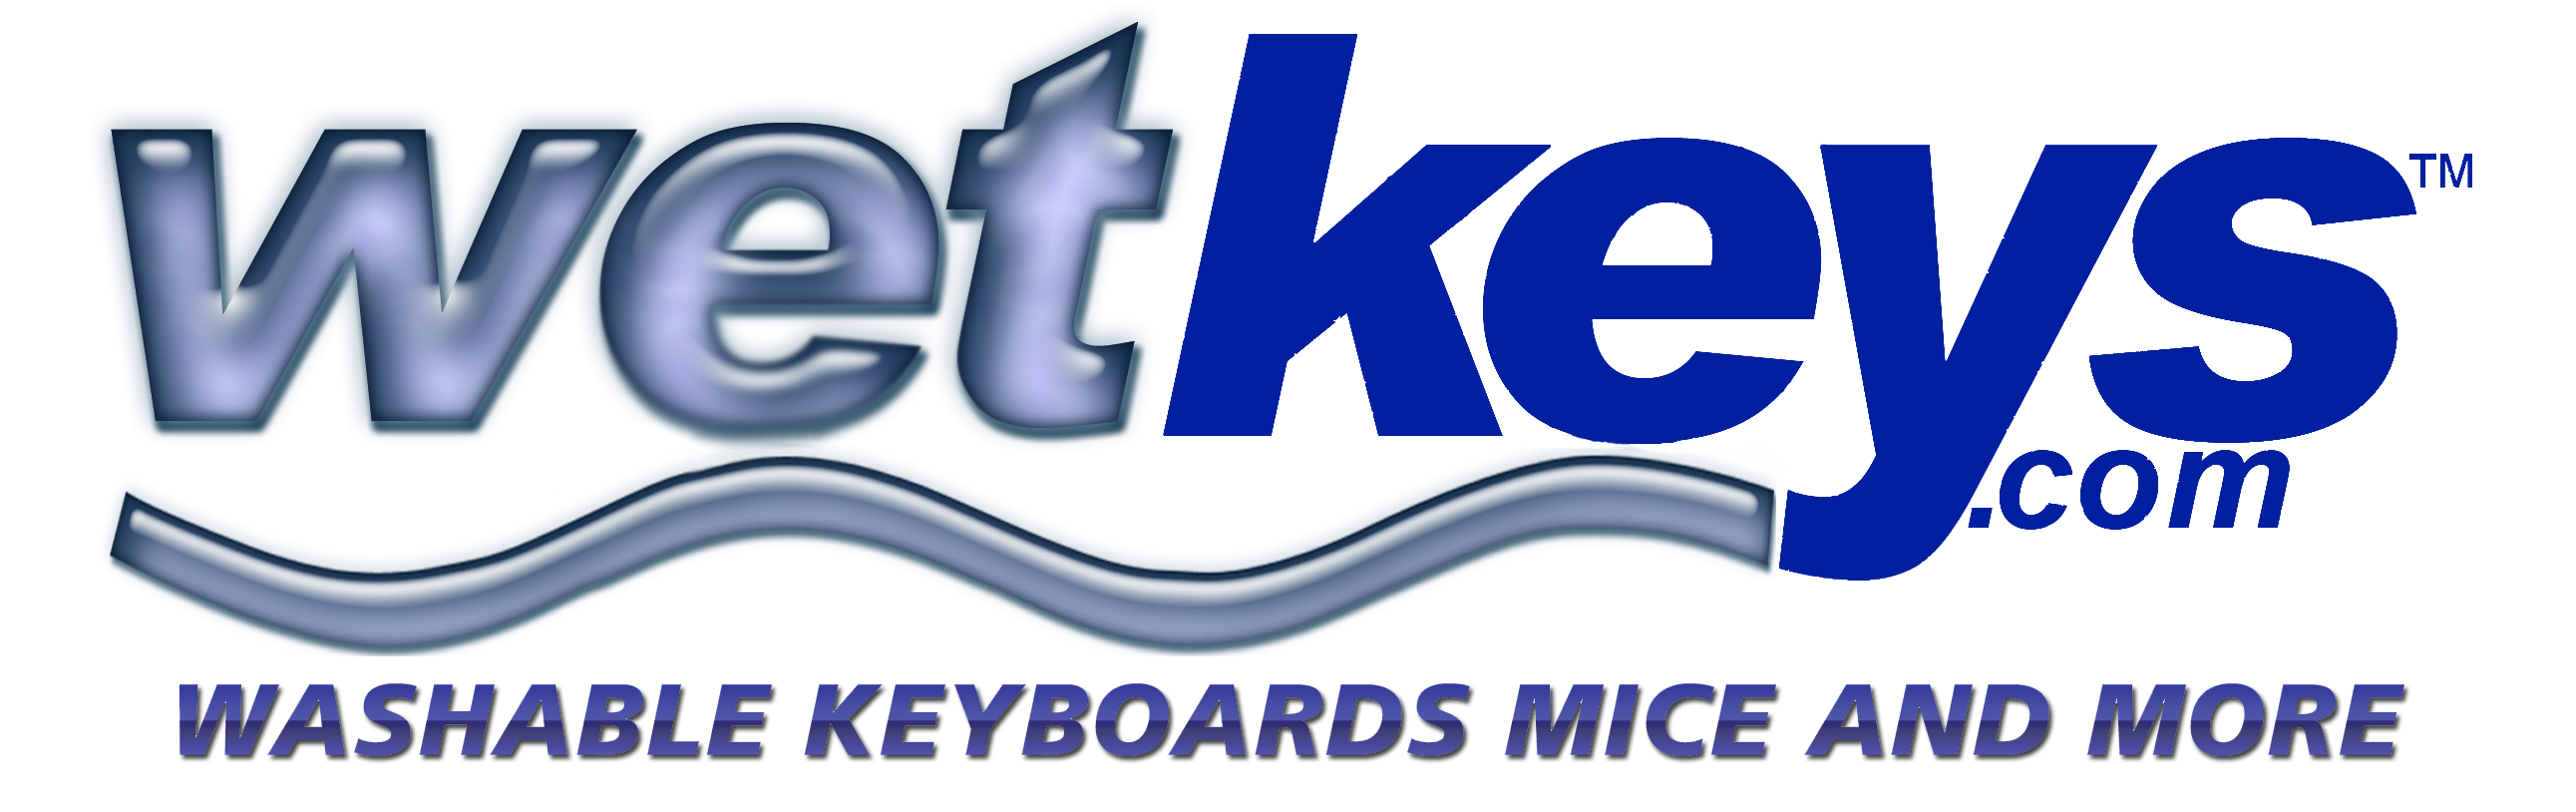 WetKeys Washable Keyboards